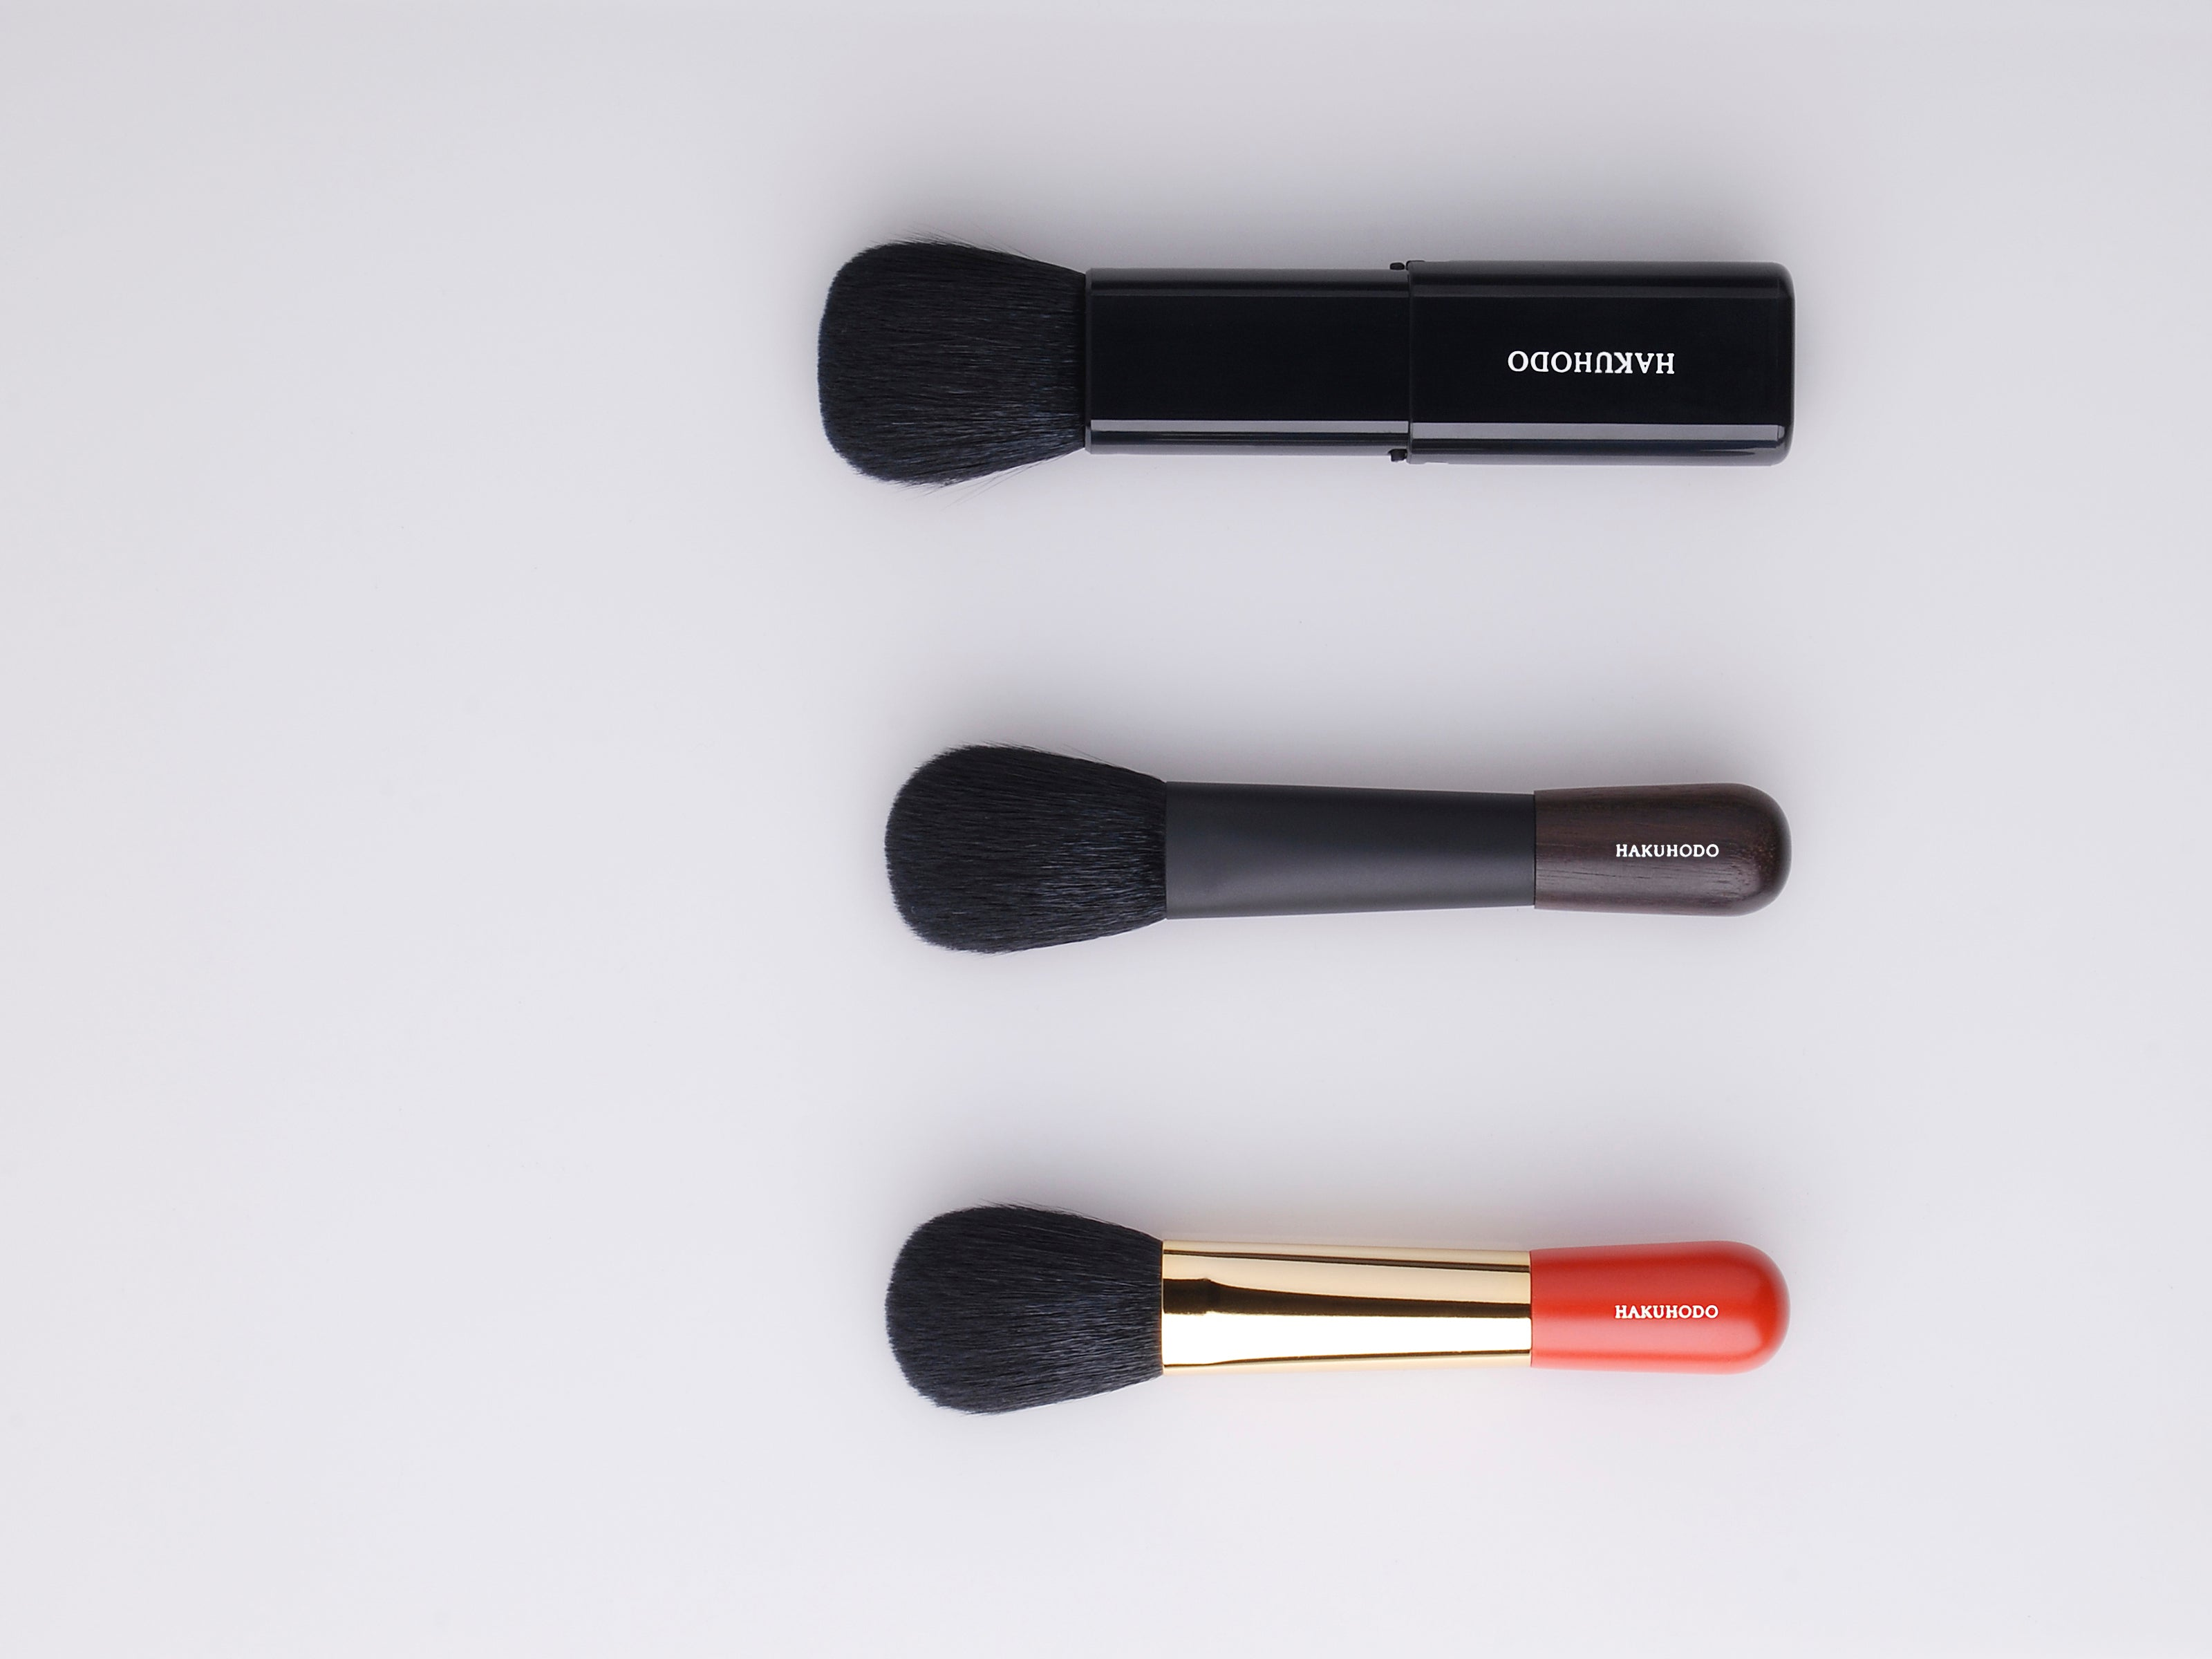 Retractable and Compact Brushes For